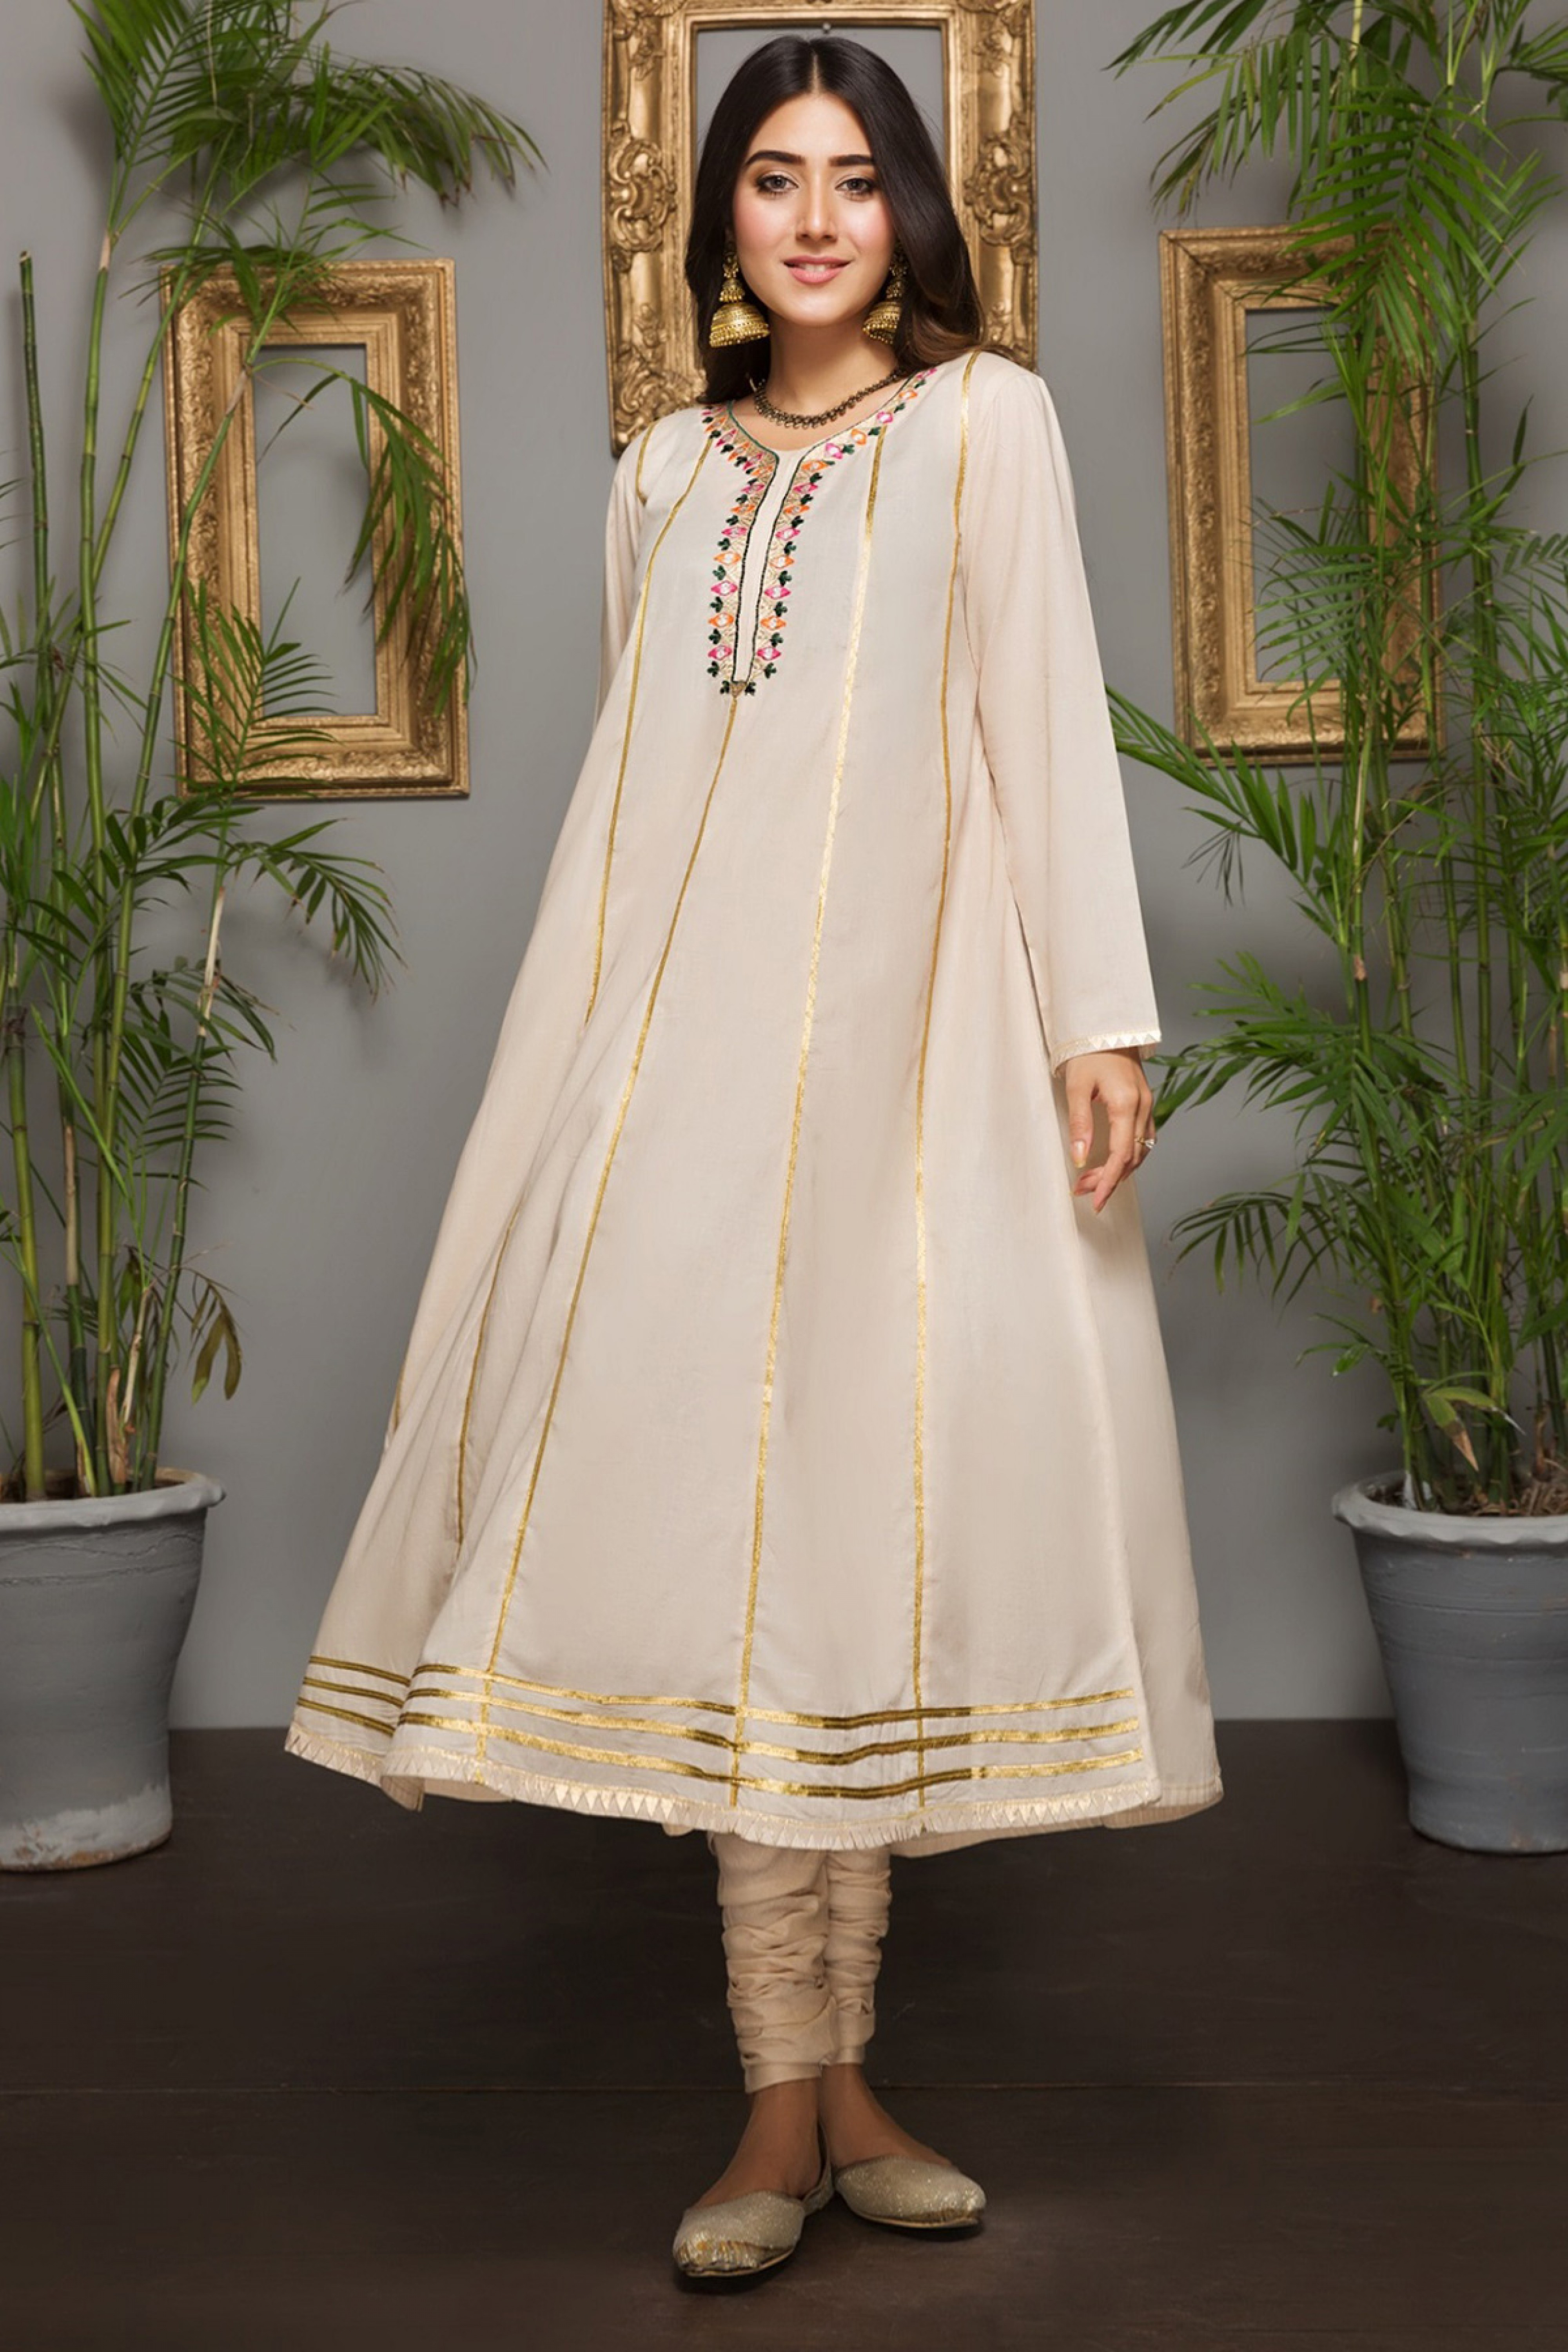 WHITE TULIP (Embroidered Frock)